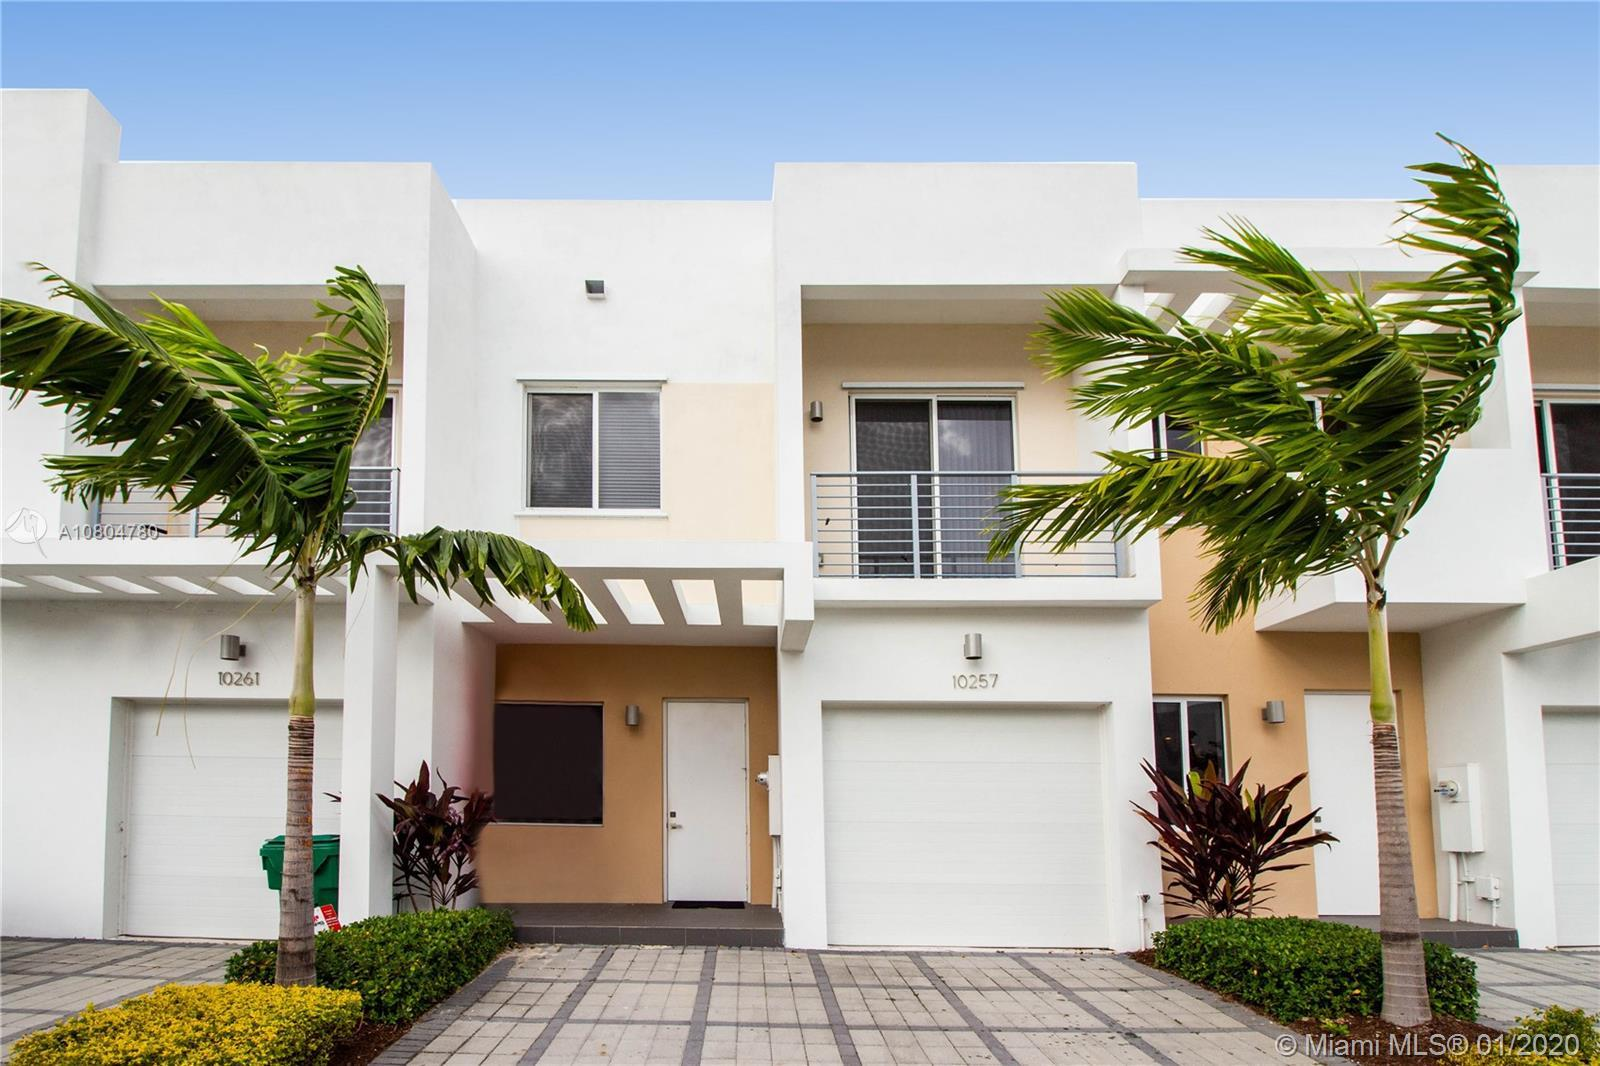 Gorgeous 3 bedroom 2.5 bathroom townhouse in gated community Neovita at Doral. With gym and pool in